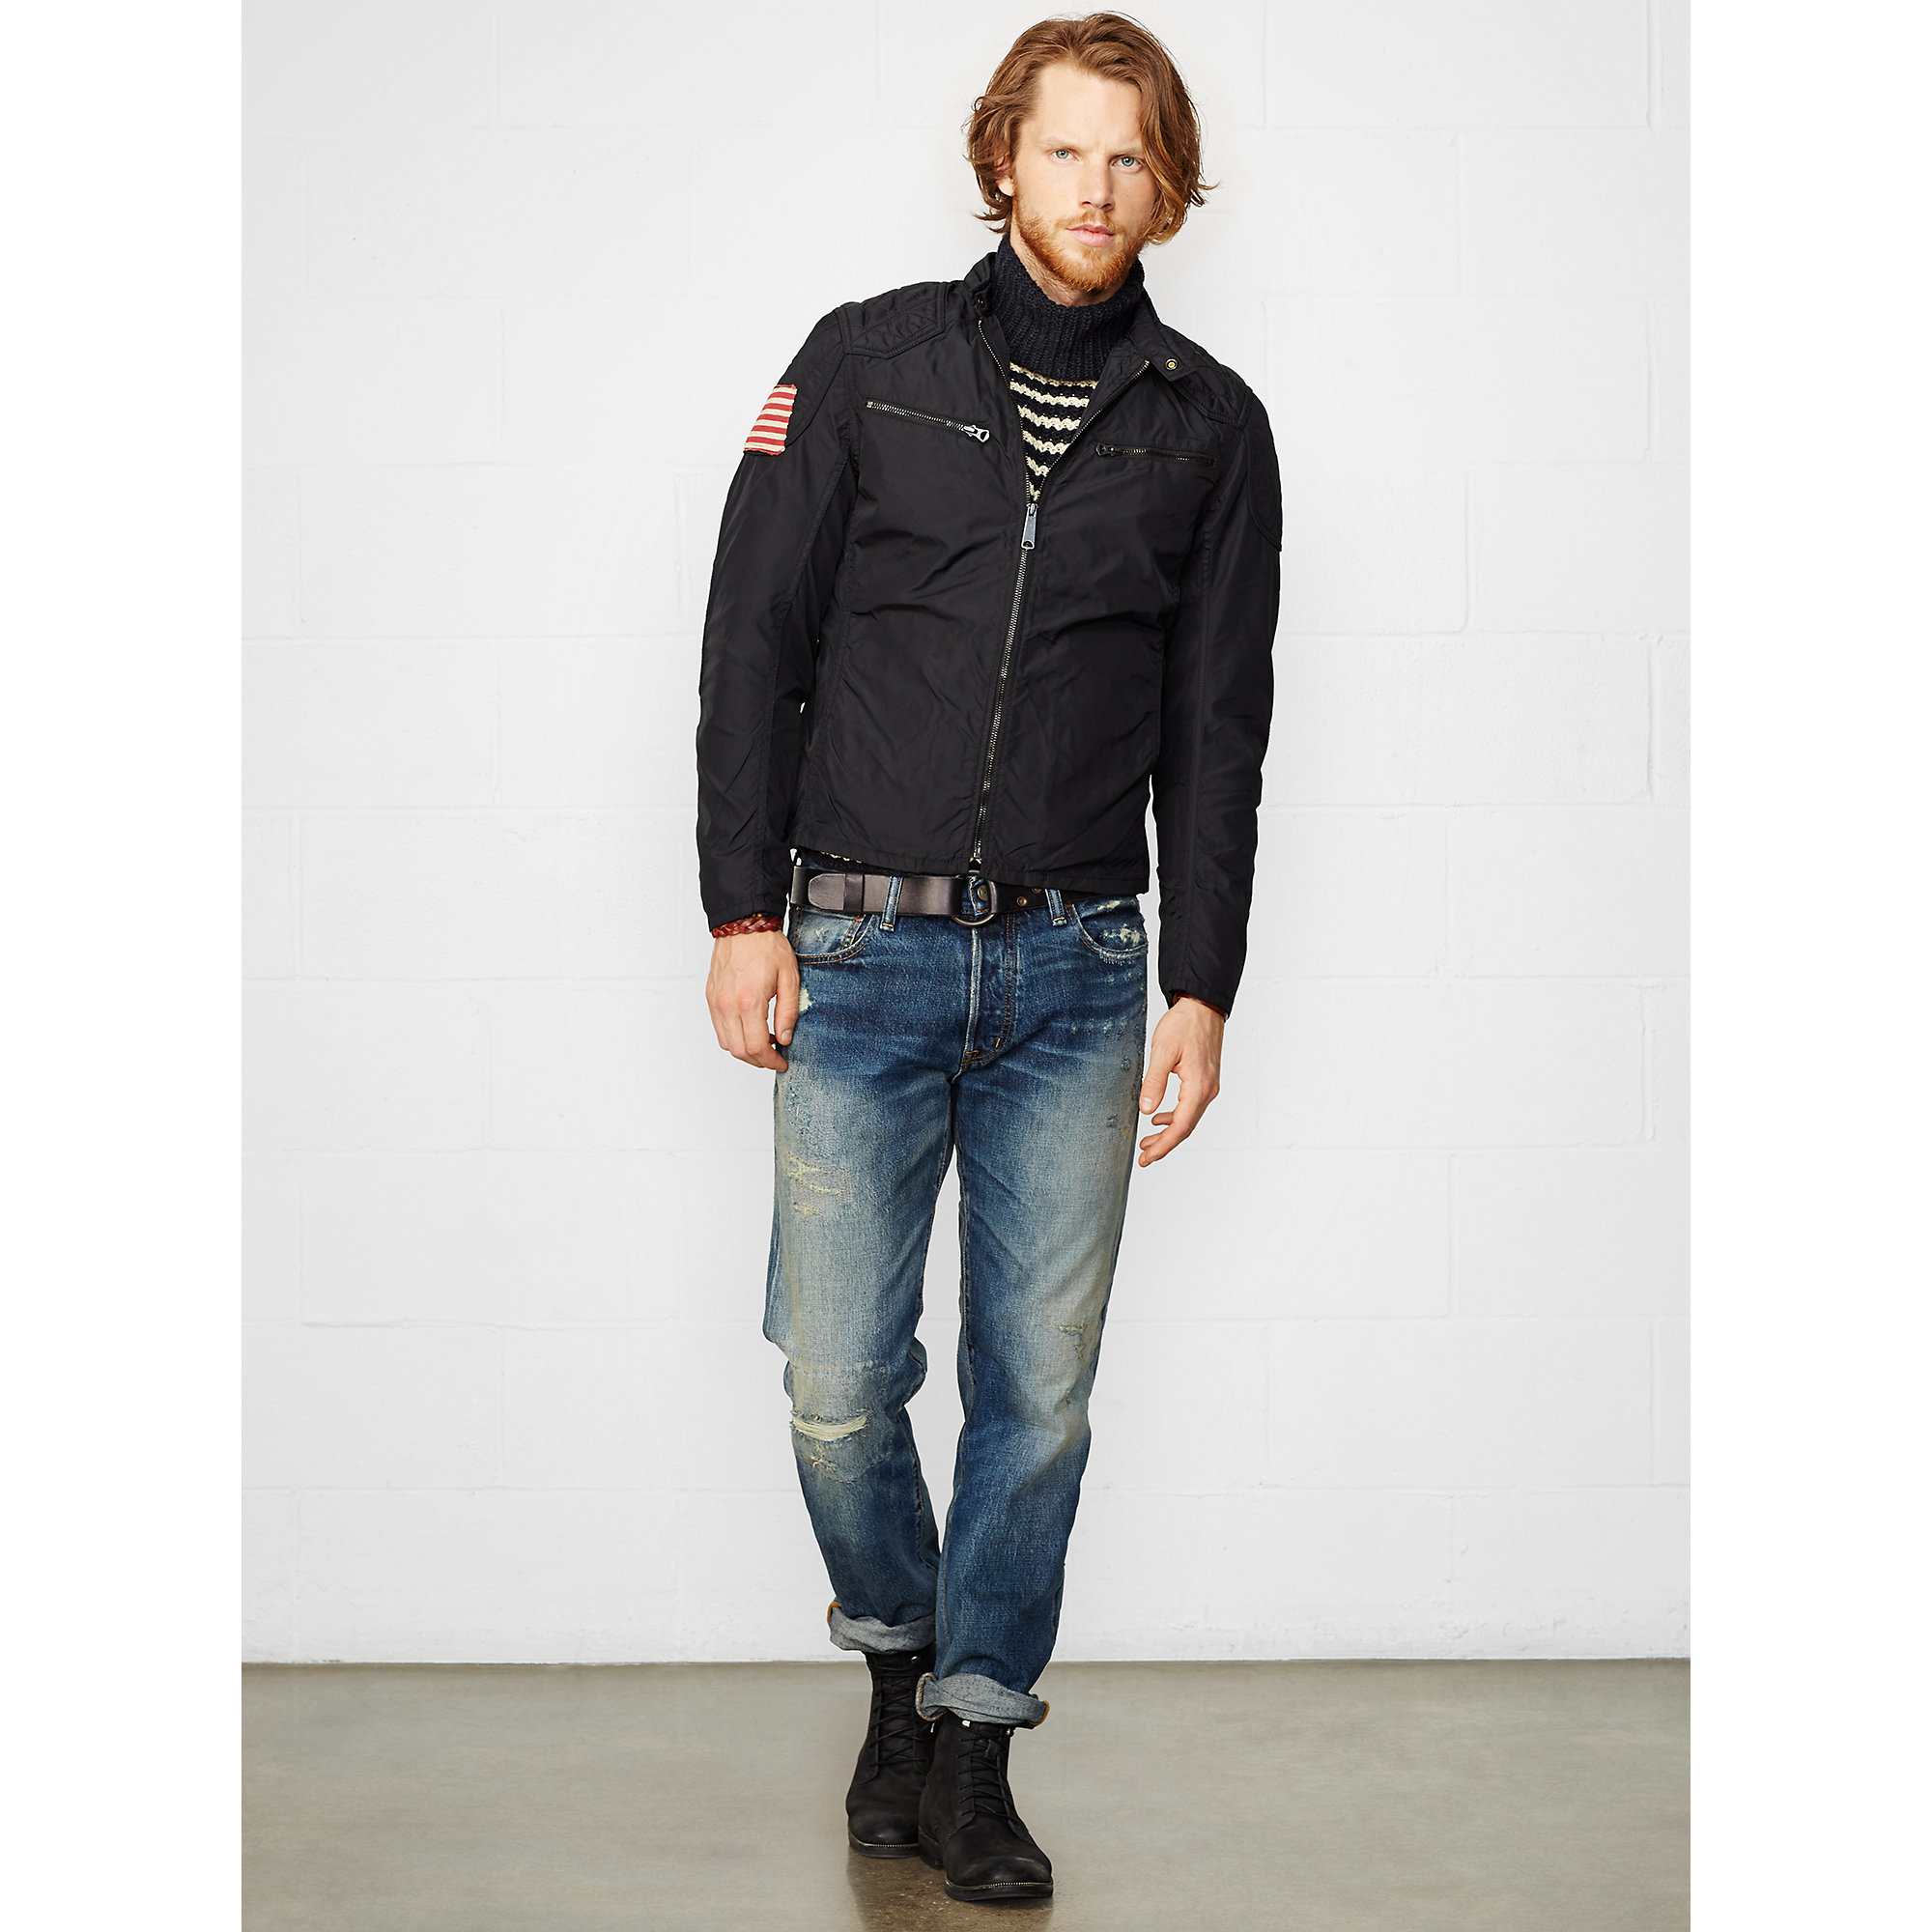 Lyst - Denim u0026 supply ralph lauren Wax Nylon Moto Jacket in Black for Men